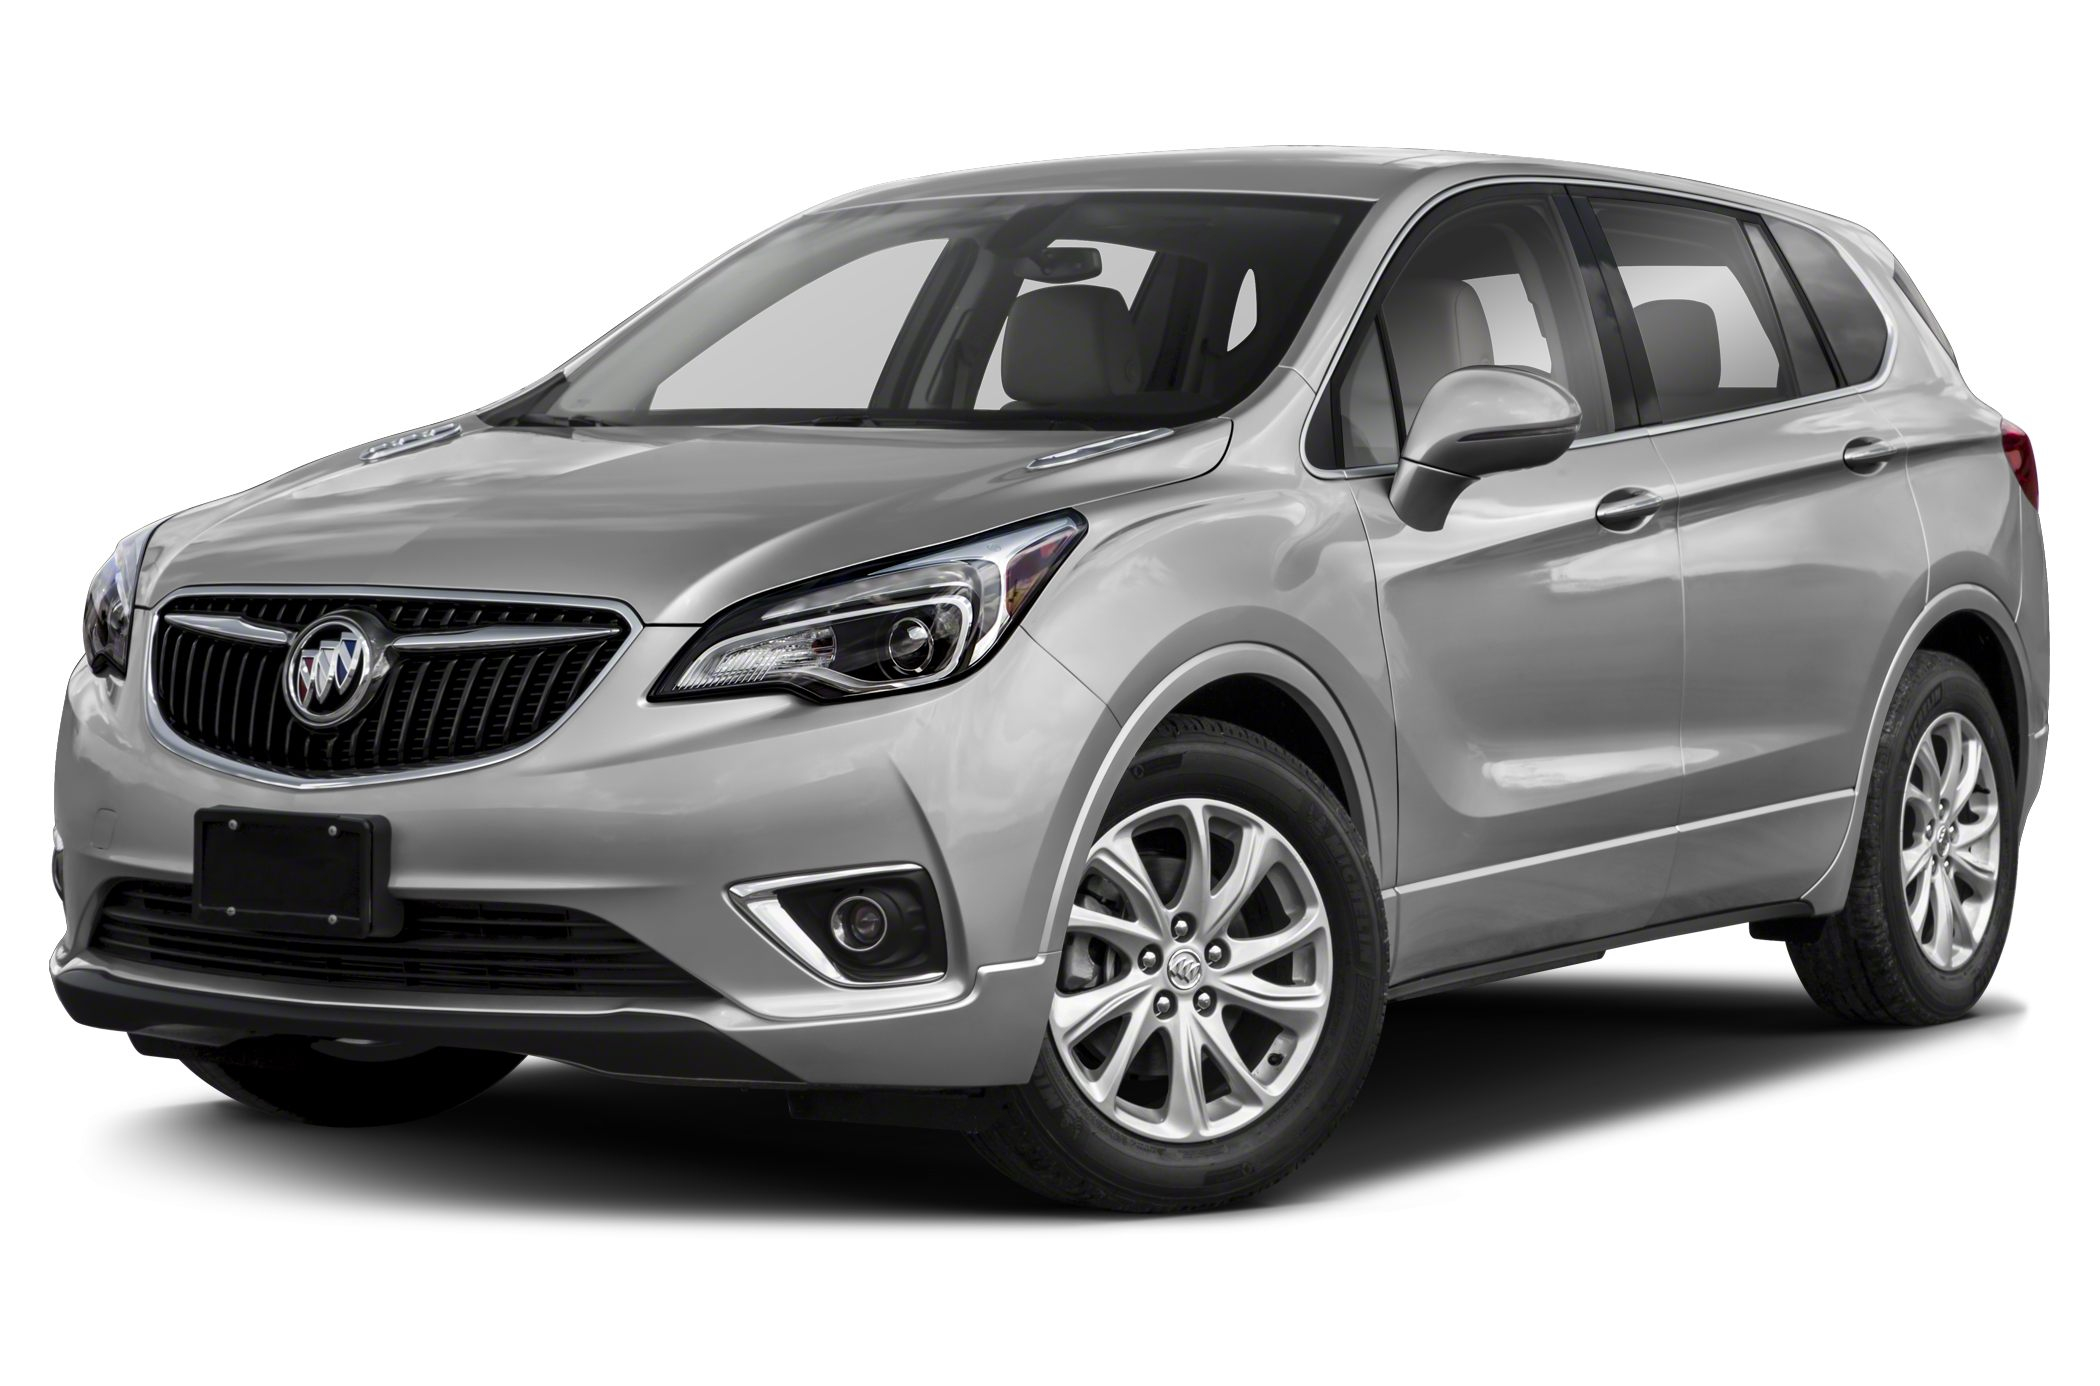 2020 Buick Envision Specs And Prices 2021 Buick Envision Ground Clearance, Gas Mileage, Horsepower